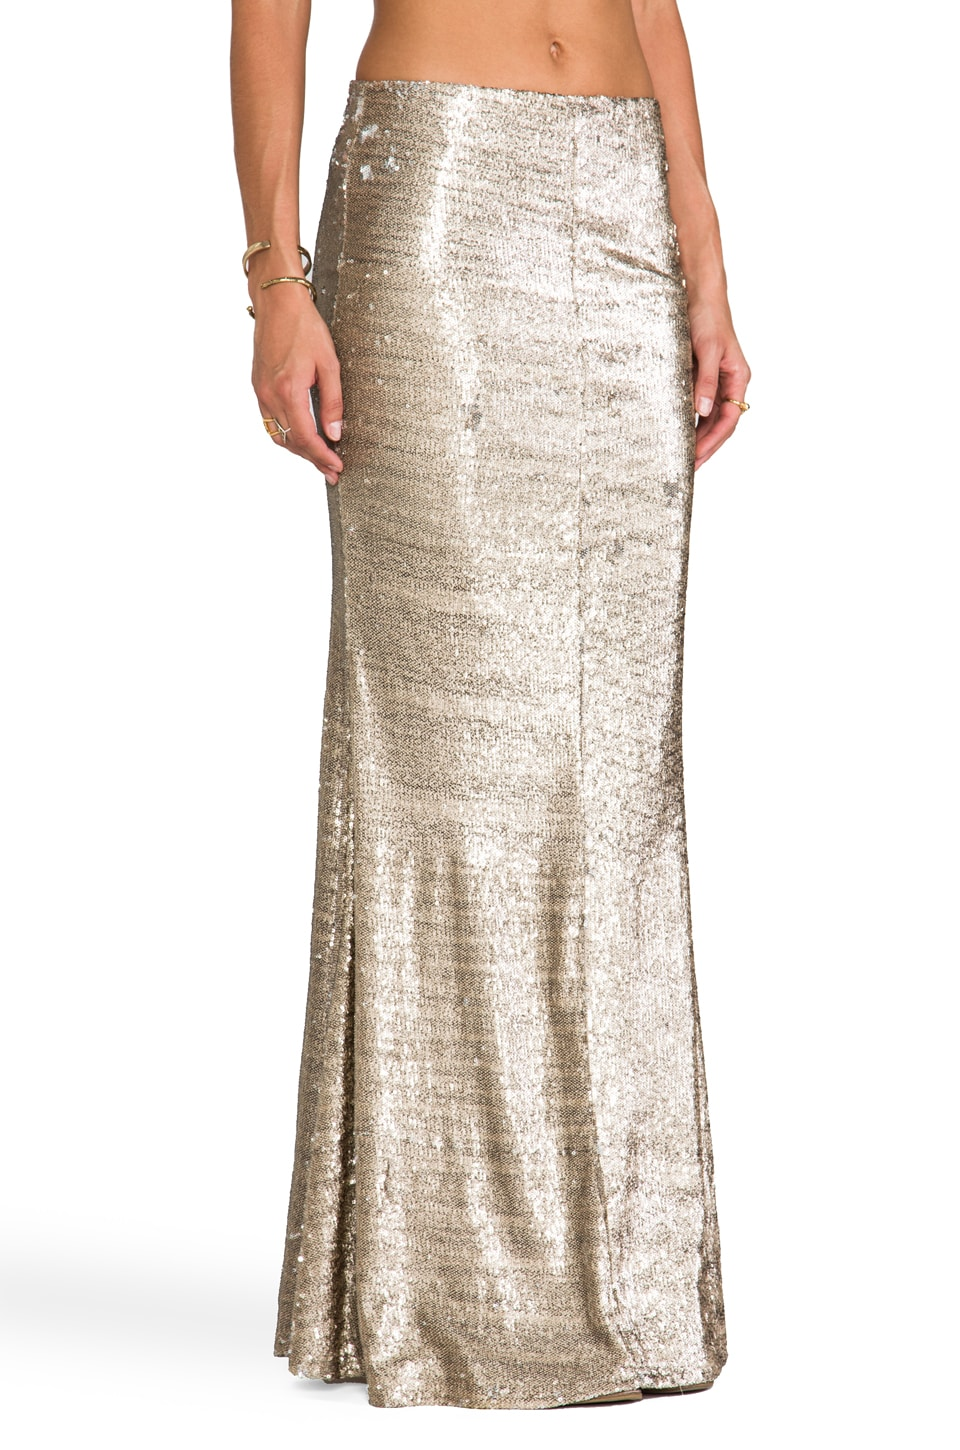 Line & Dot Sequin Mermaid Skirt in Gold | REVOLVE